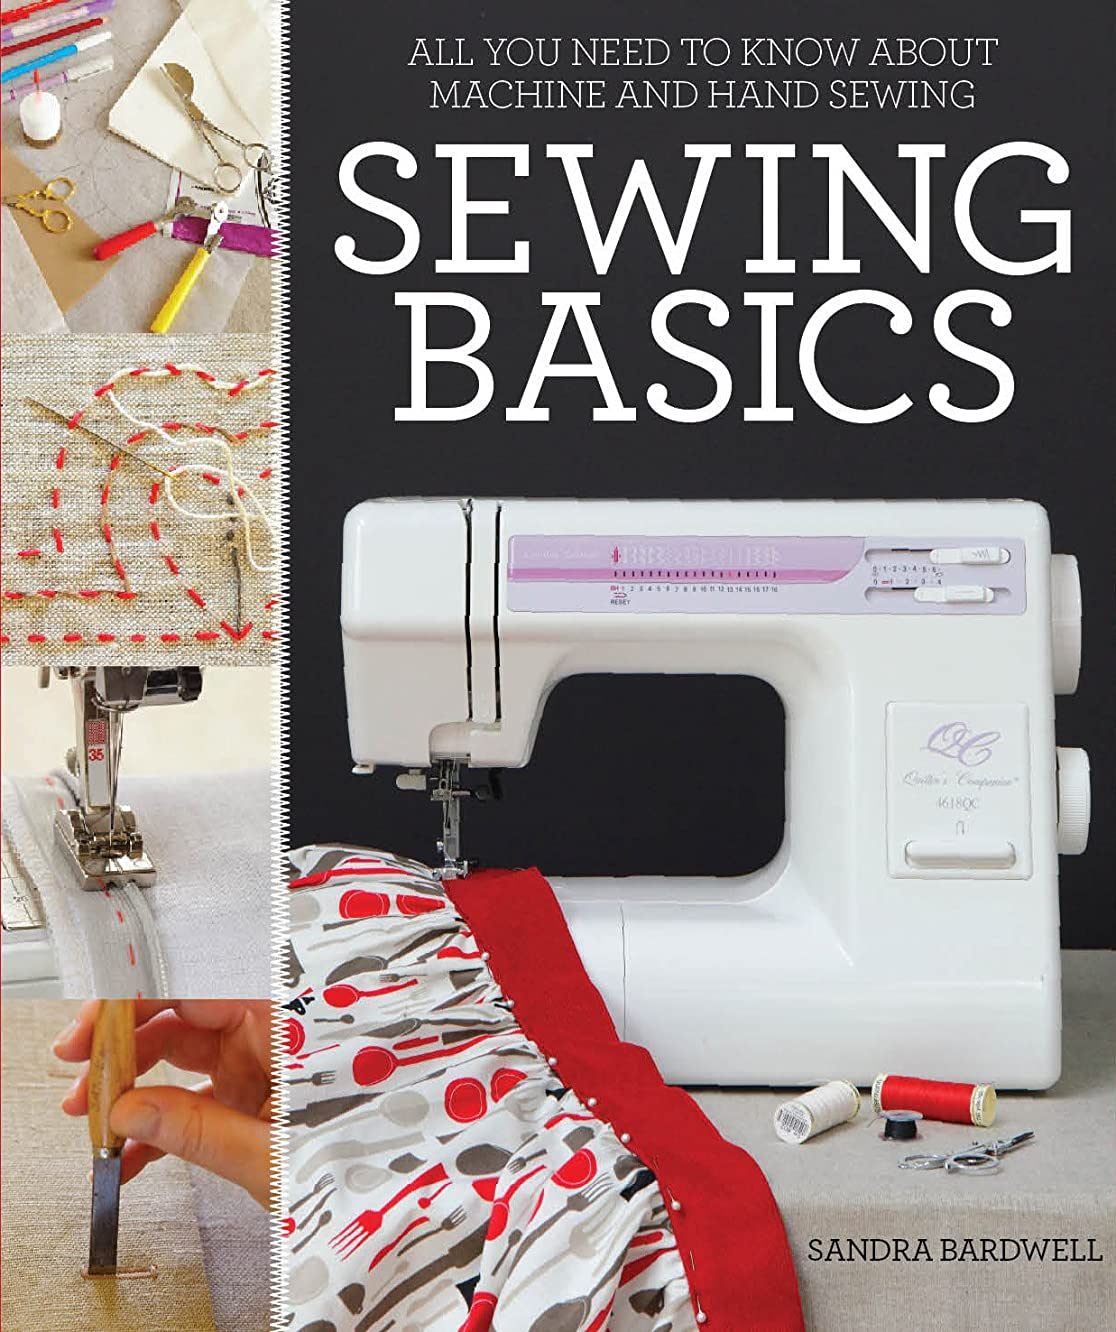 Sewing Basics: All You Need to Know about Machine and Hand Sewing